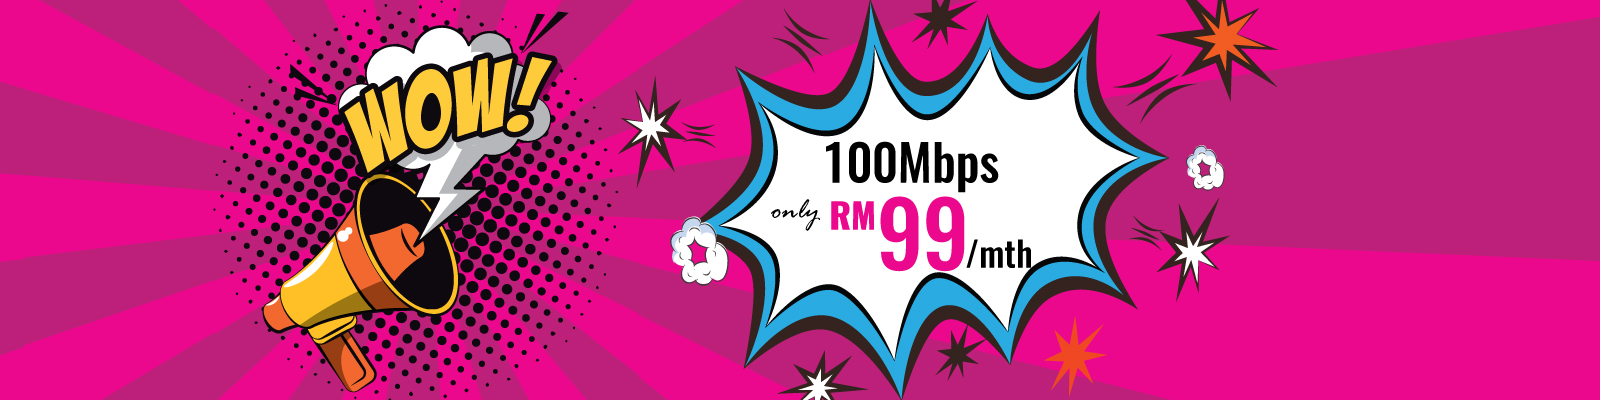 Time fibre home latest promotion RM99